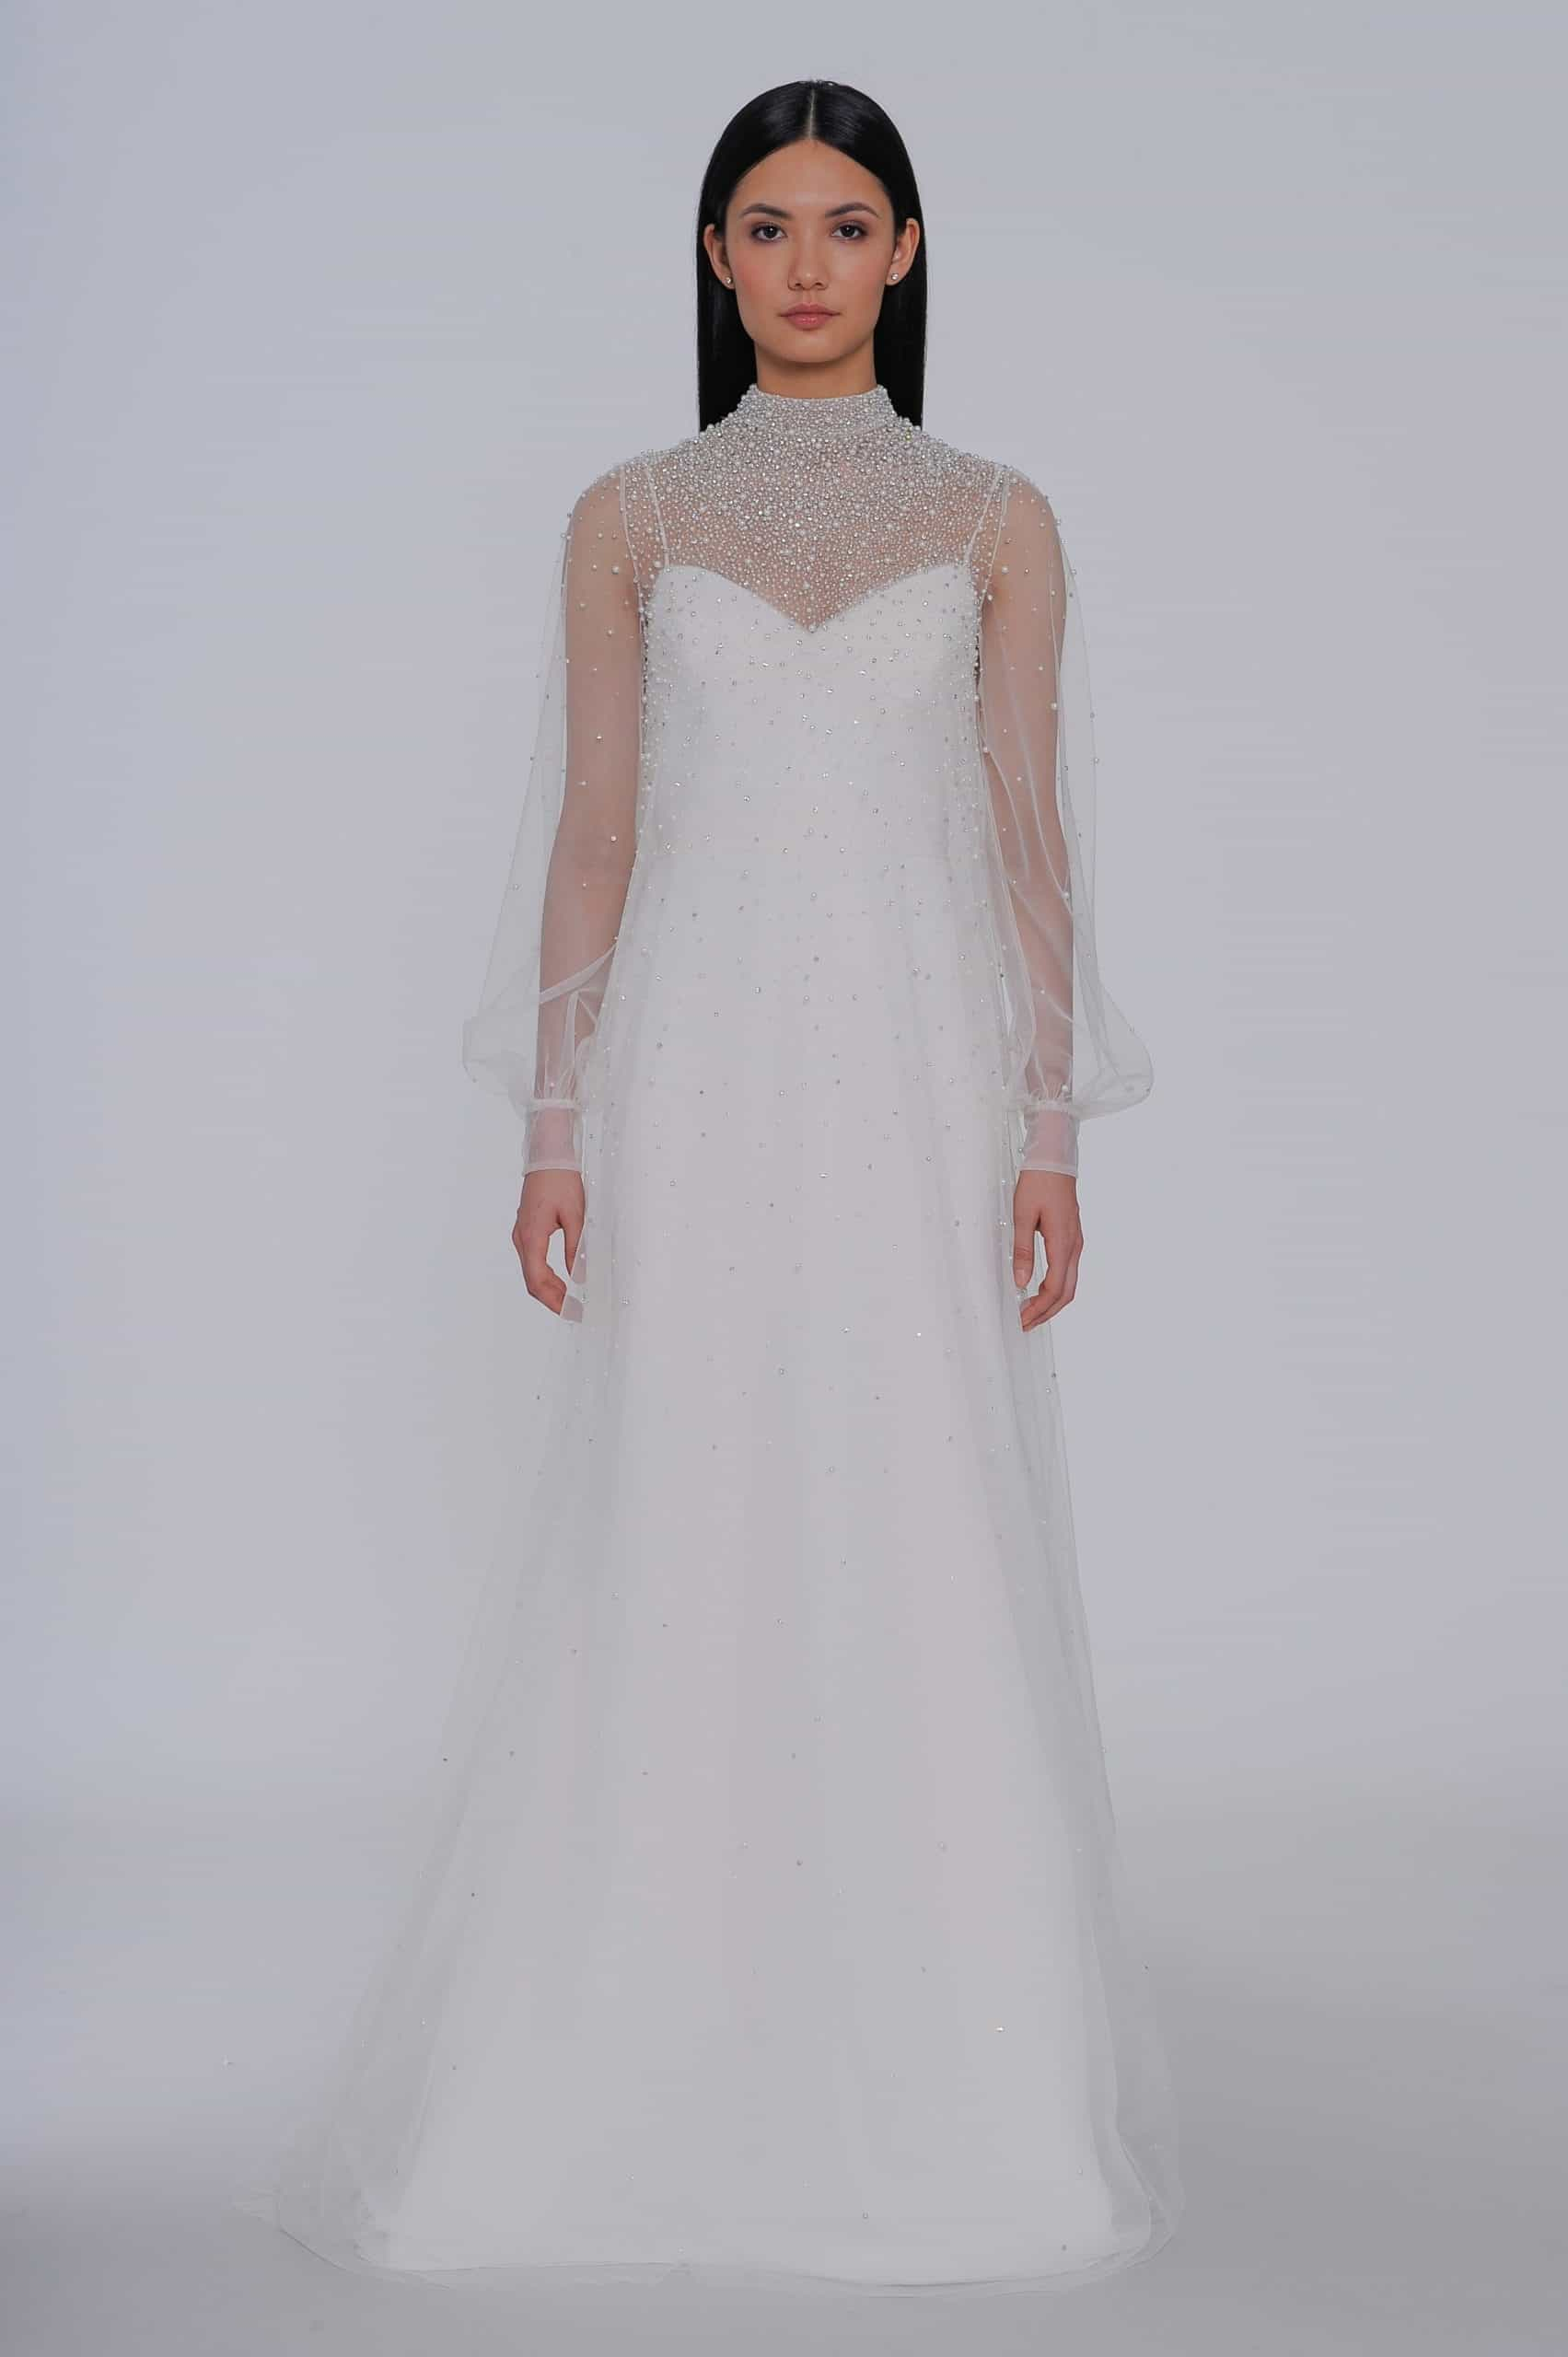 a-lined wedding dress with a tulle cape with pearls by Allison Webb